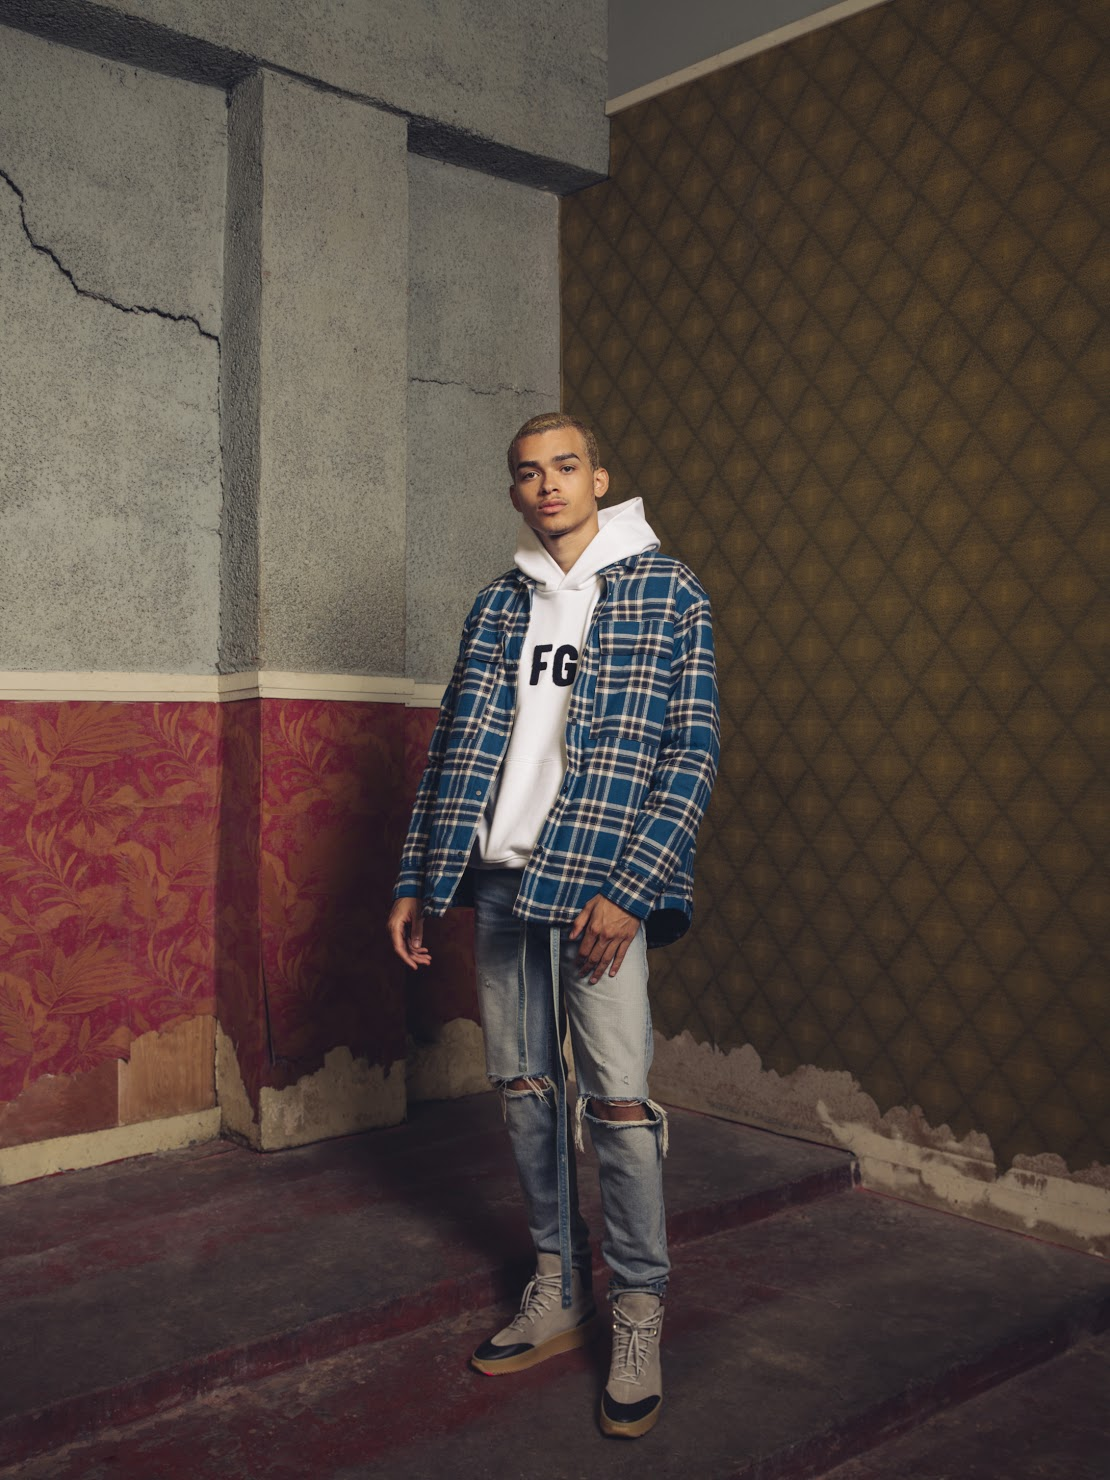 FEAR OF GOD_LOOKBOOK.jpg